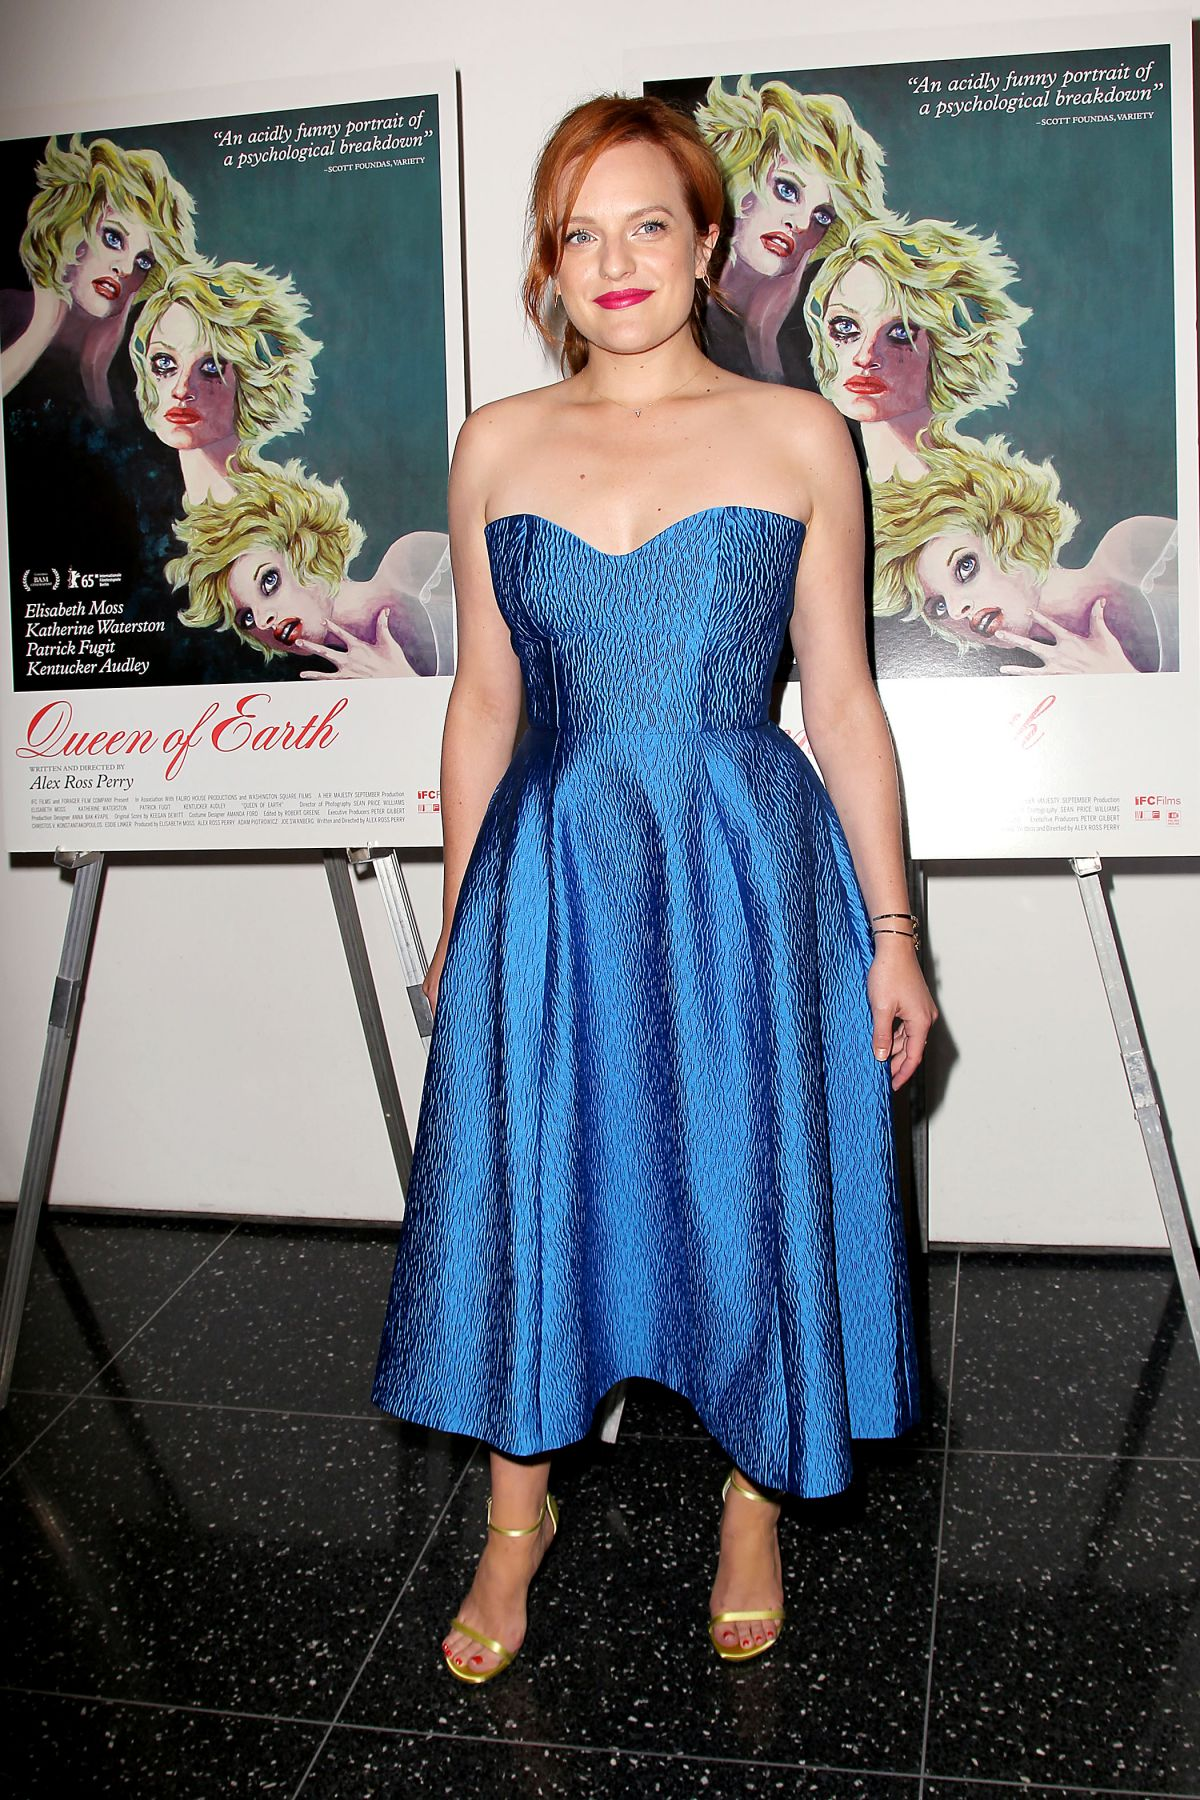 Elisabeth moss at queen of earth premiere in new york 6